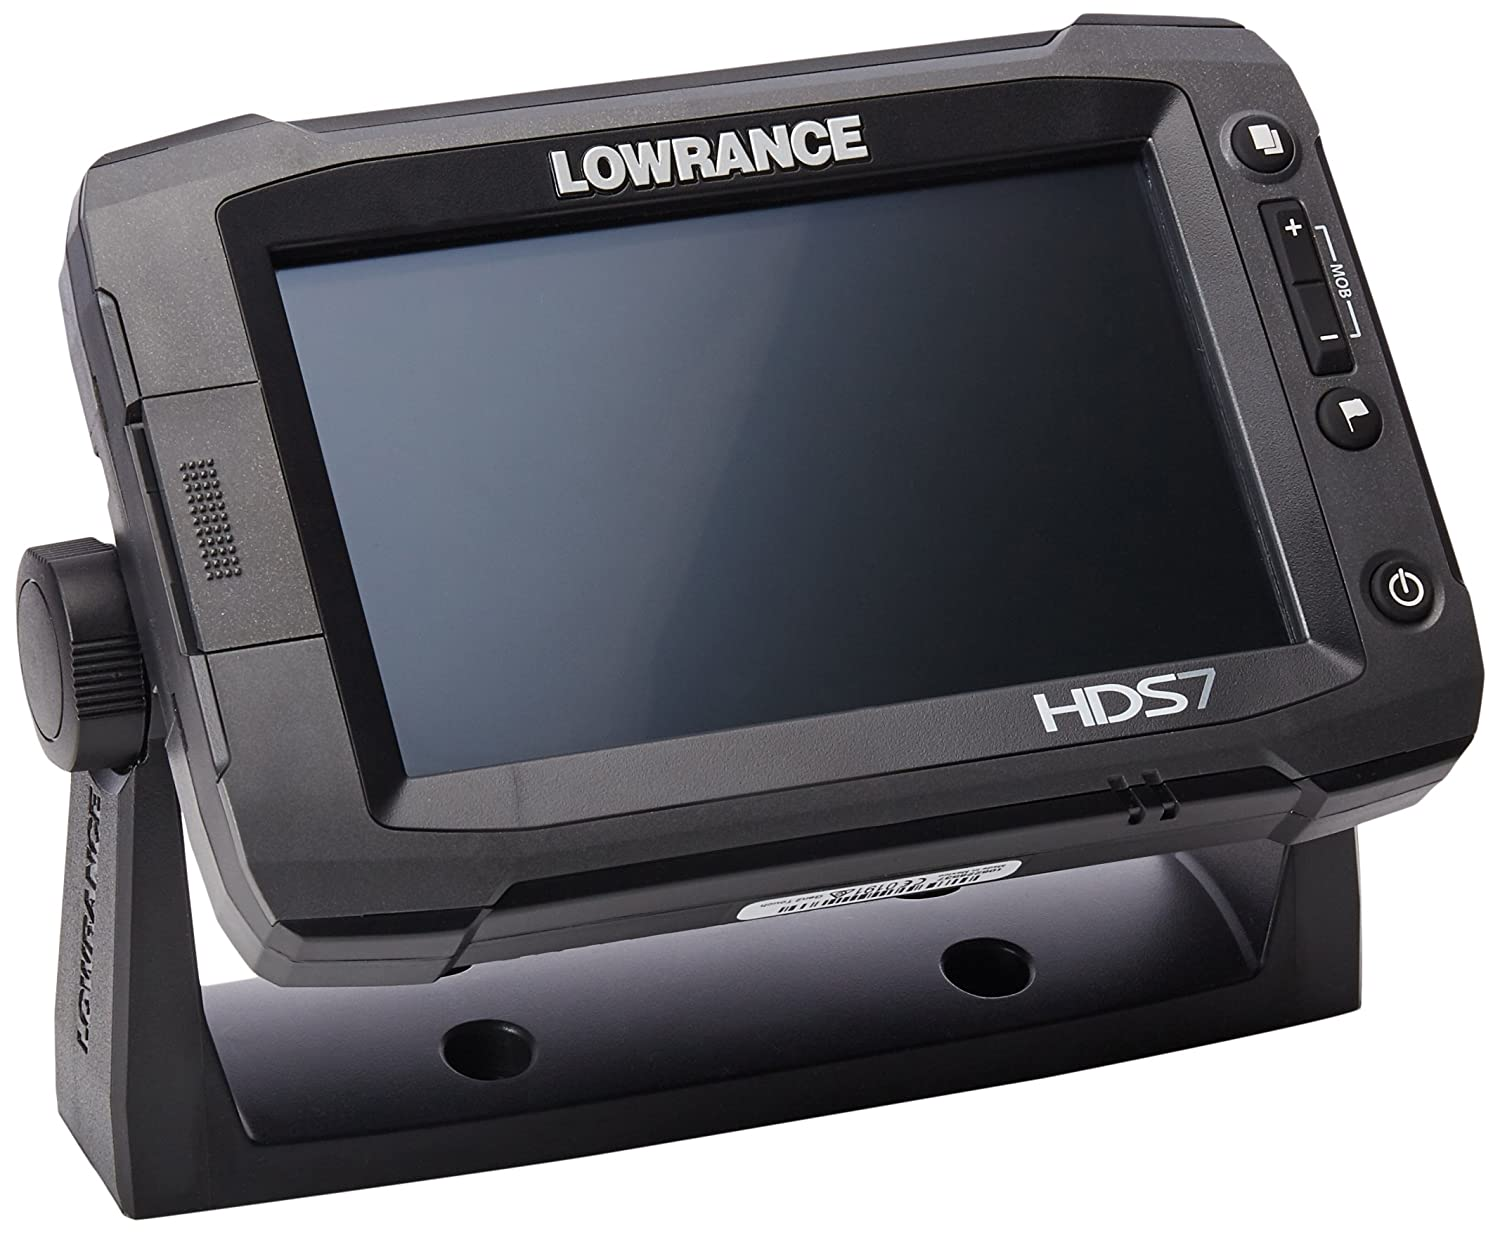 Lowrance 000 10764 001 Hds 7 Gen2 Touch Touchscreen Sonichub Wiring Diagram Chartplotter With Built In Fishfinder Without Transducer Cell Phones